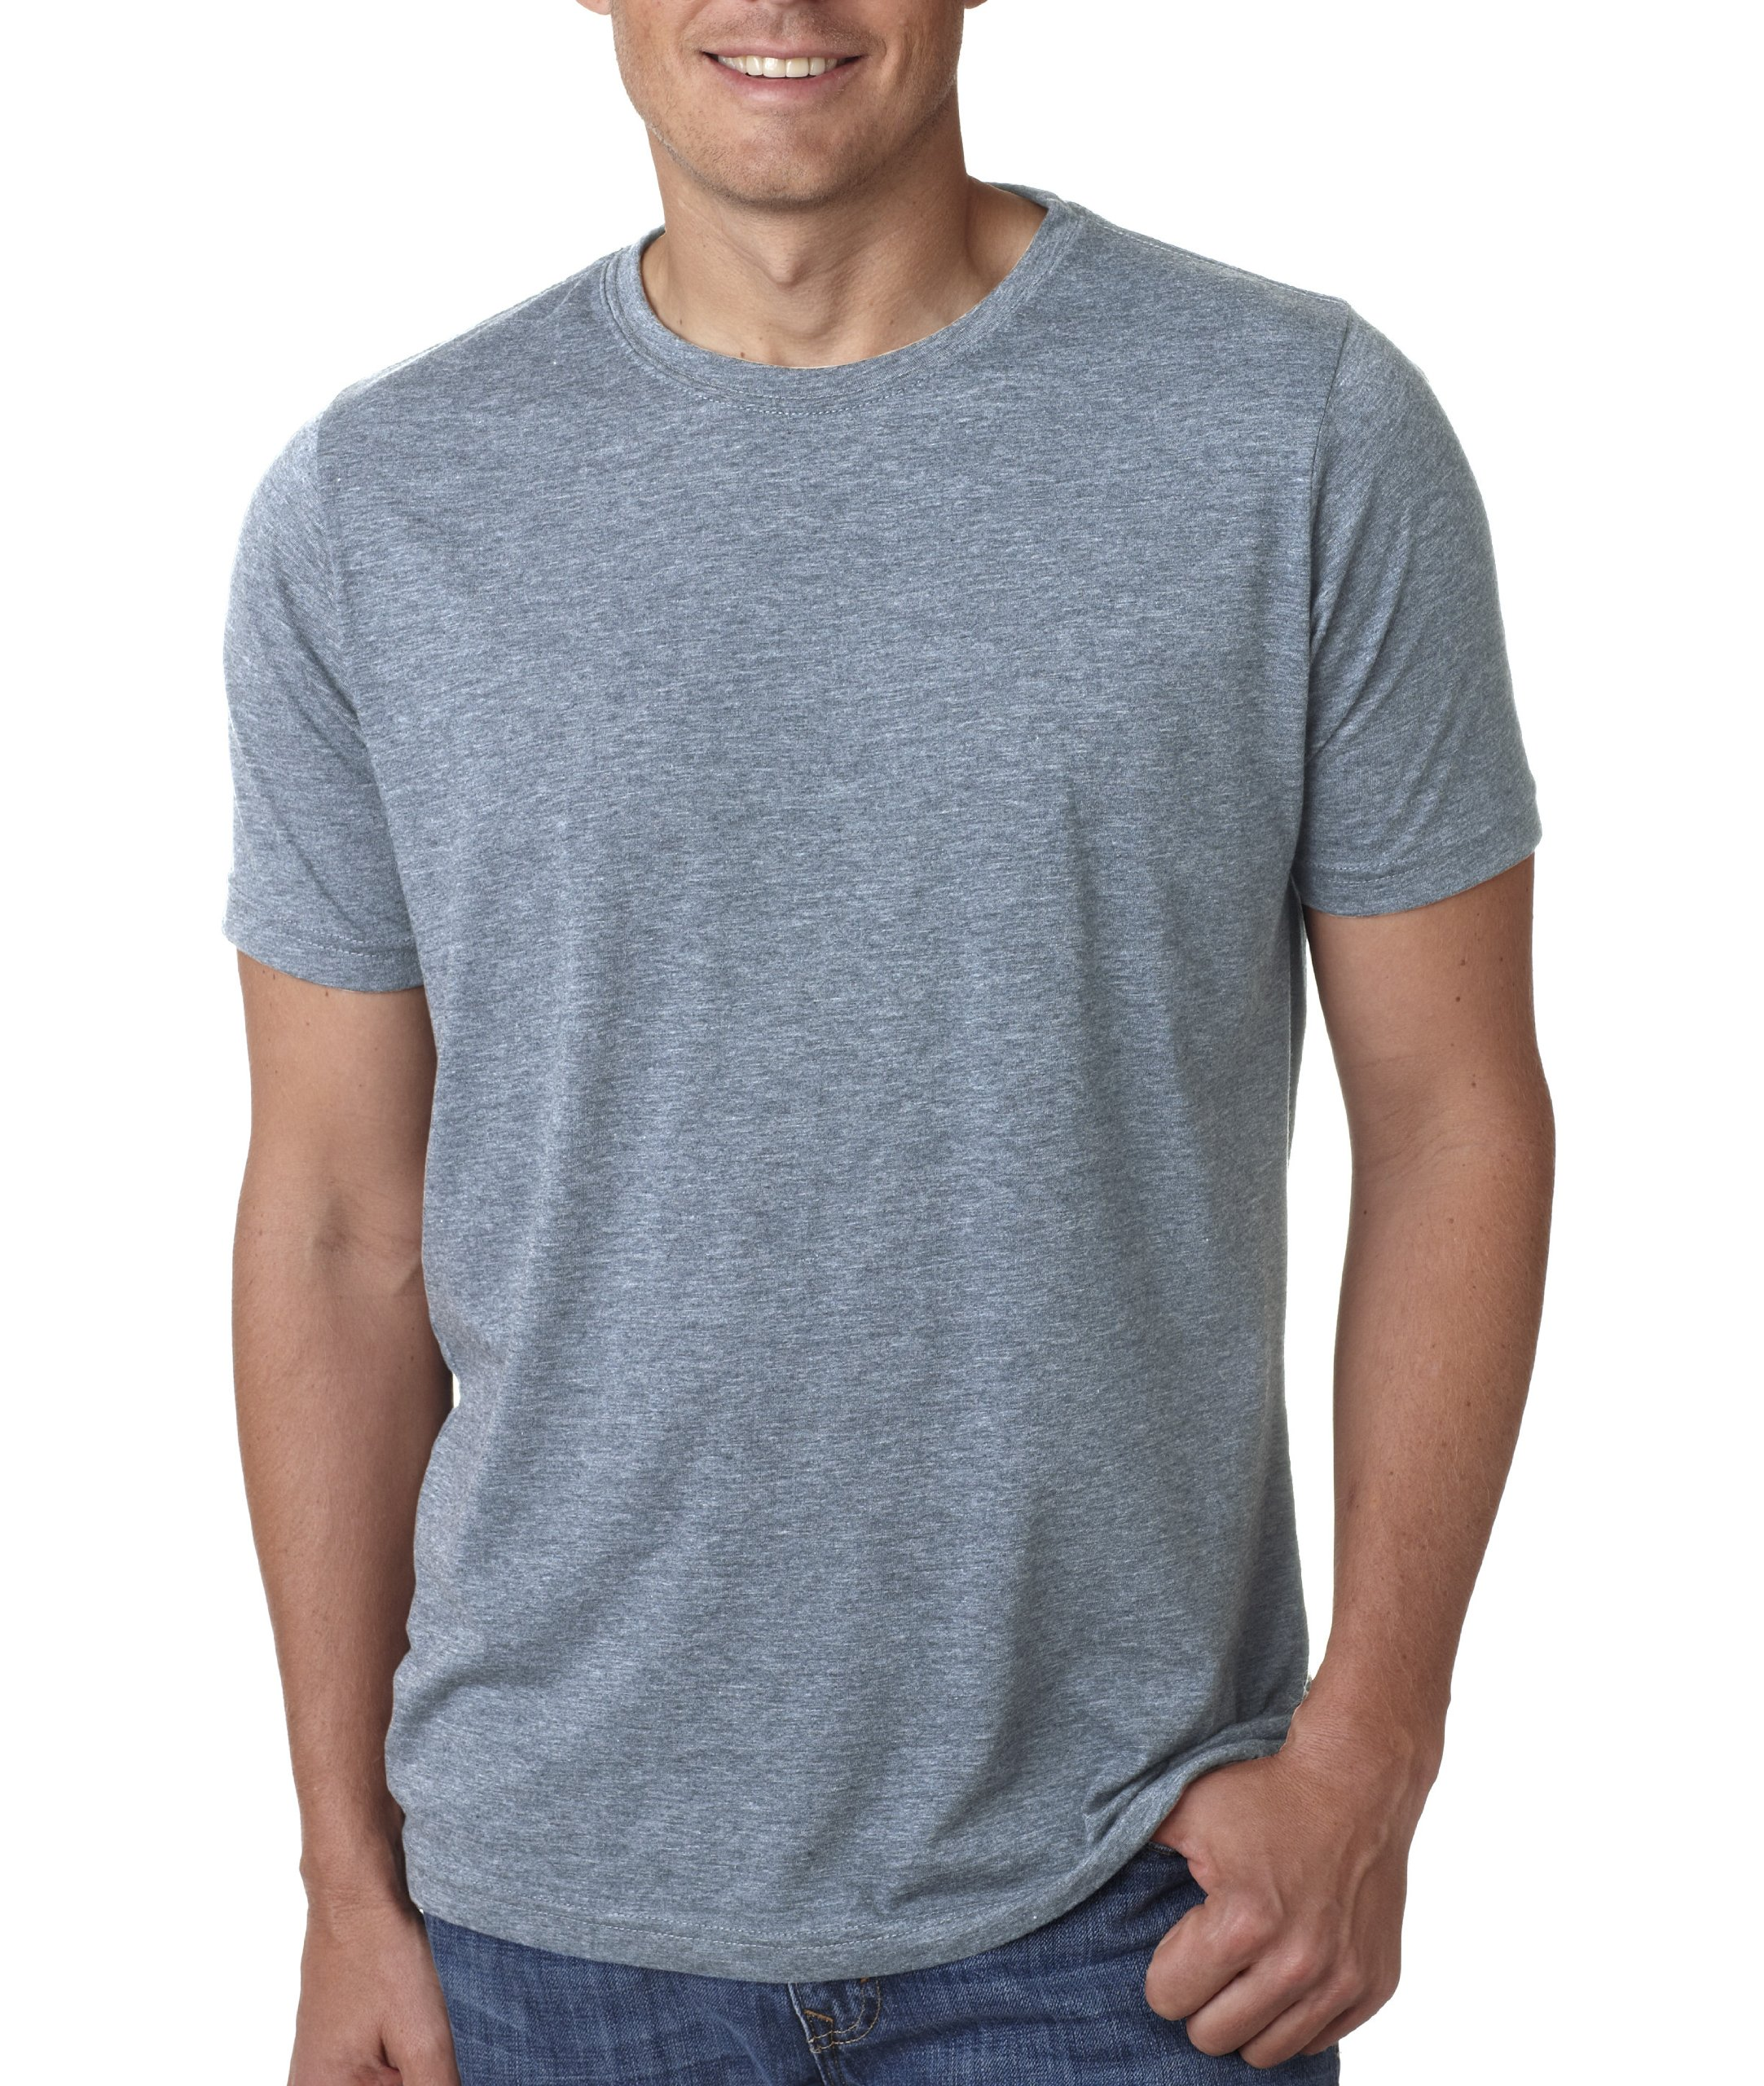 Next Level Apparel 6200 Mens Poly & Cotton Crew Tee - Stonewashed Denim44; Small